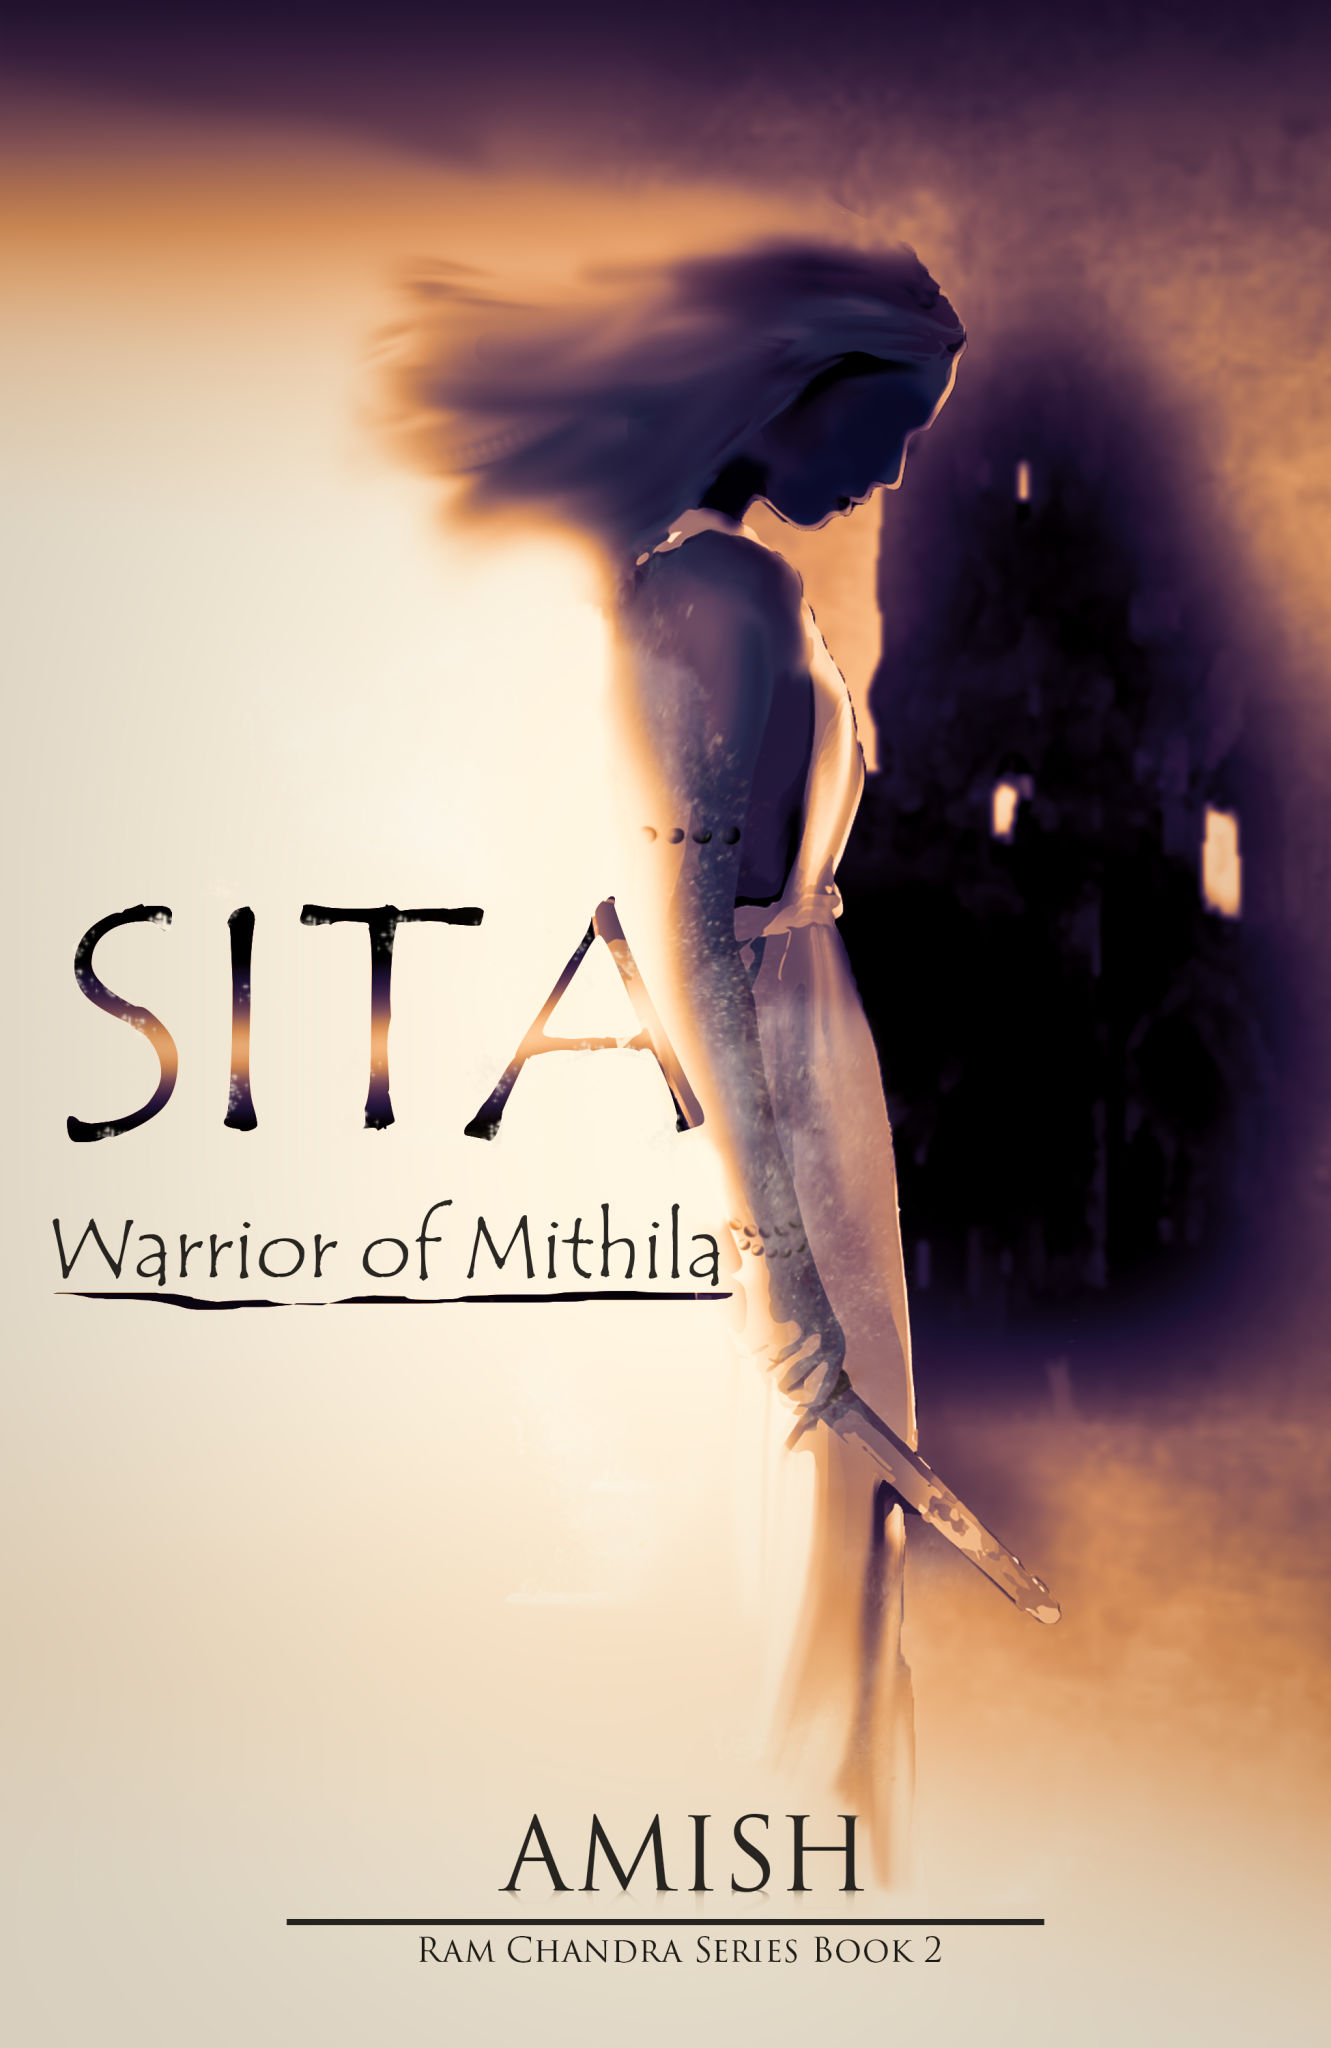 Book Cover Design Hd ~ Sita warrior of mithila cover design by mayur chavan